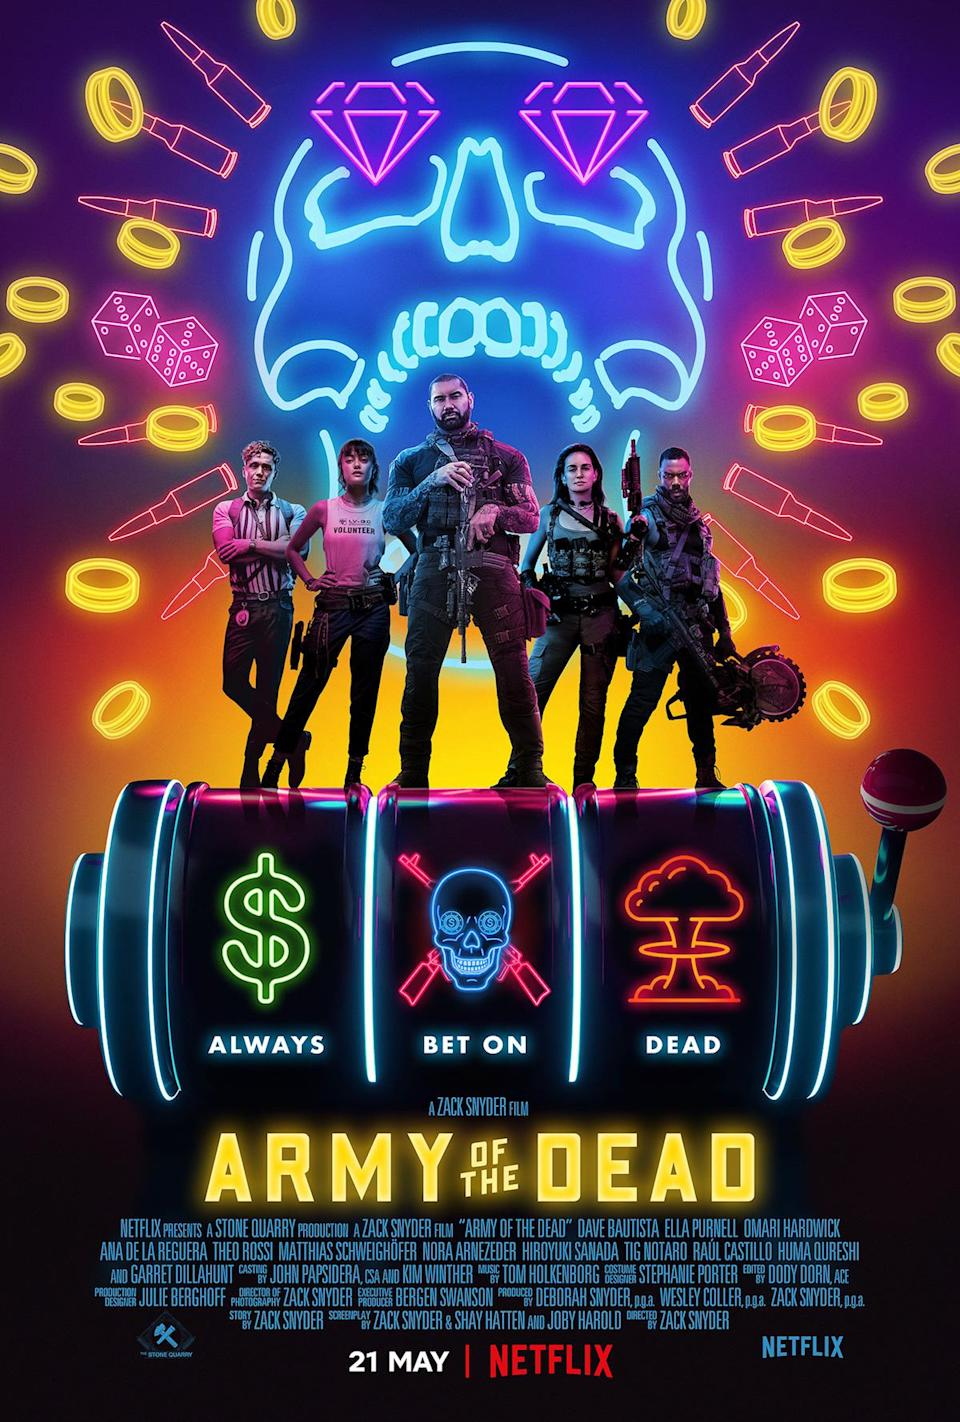 A bright neon colored poster for Army of the Dead with the characters standing atop a slot machine